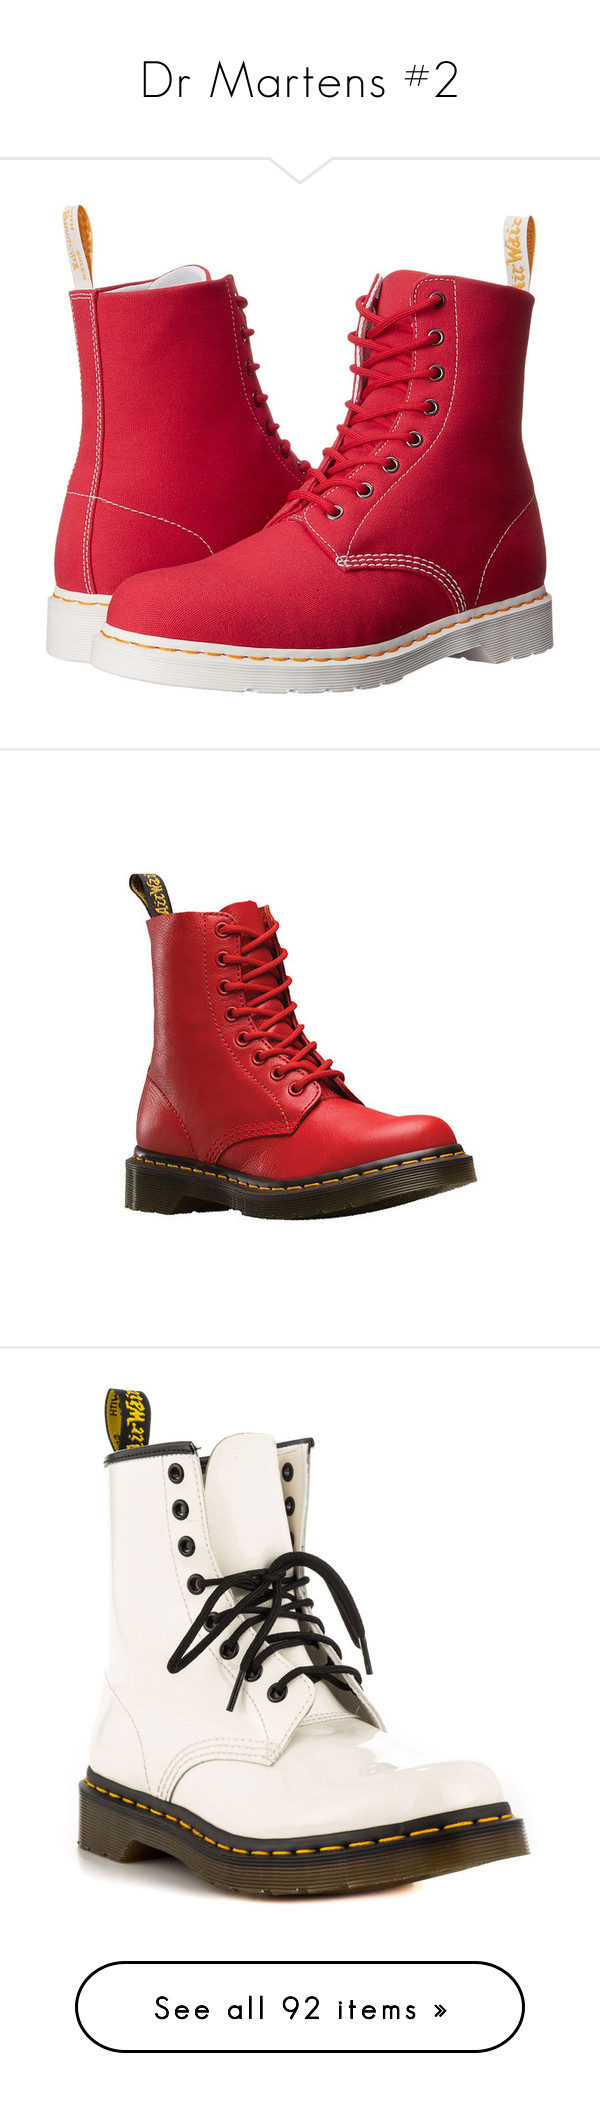 """""""Dr Martens #2"""" by oxwhatsernamexo ❤ liked on Polyvore featuring shoes, boots, ankle boots, lace up boots, lace up bootie, canvas shoes, long boots, slip resistant boots, casual and casual shoes"""